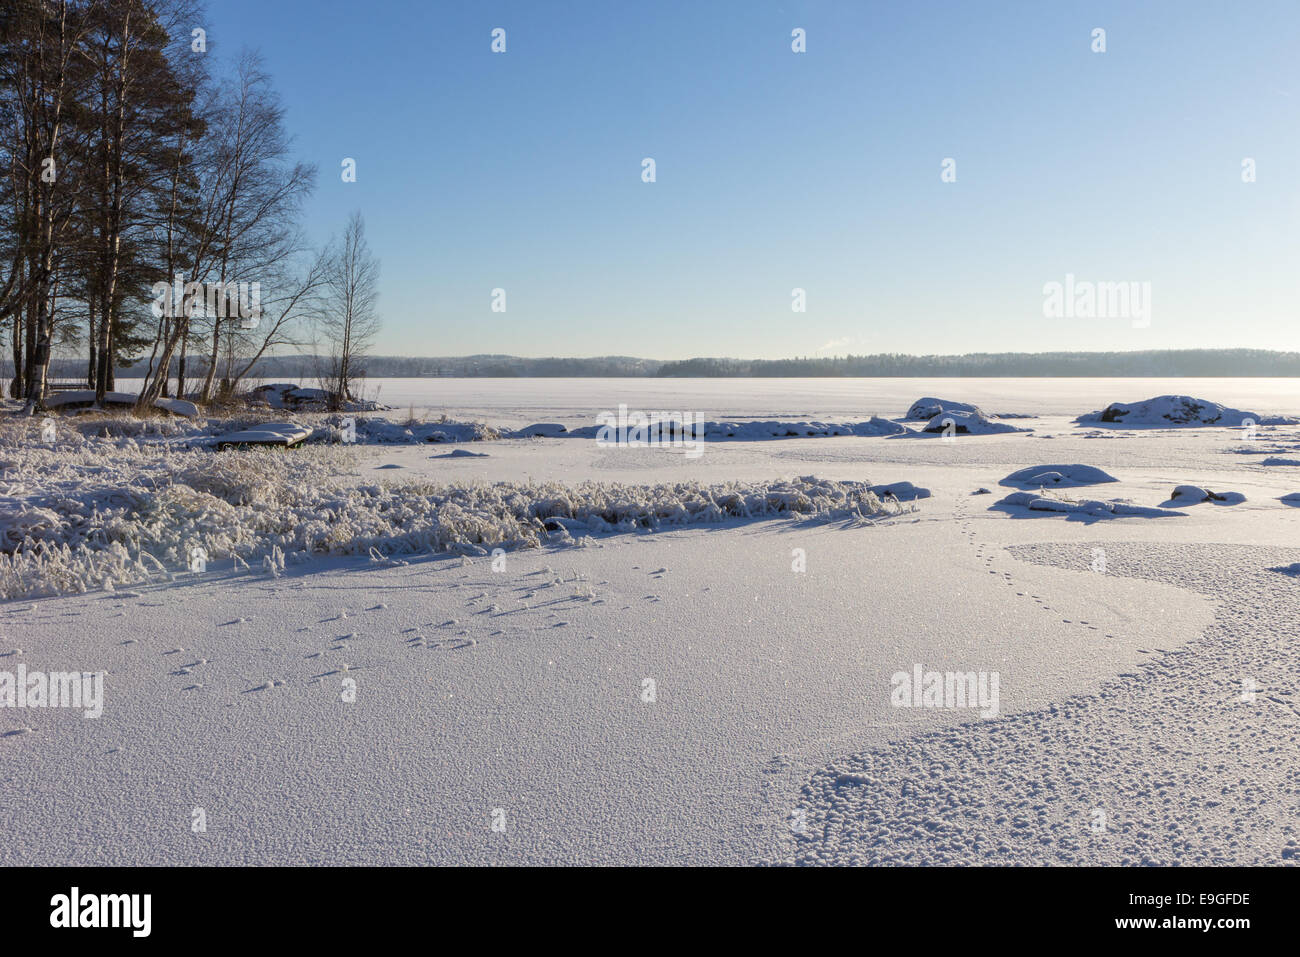 Nobody at the frosty and snowy Lake Pyhäjärvi in Tampere, Finland at a sunny day in winter - Stock Image